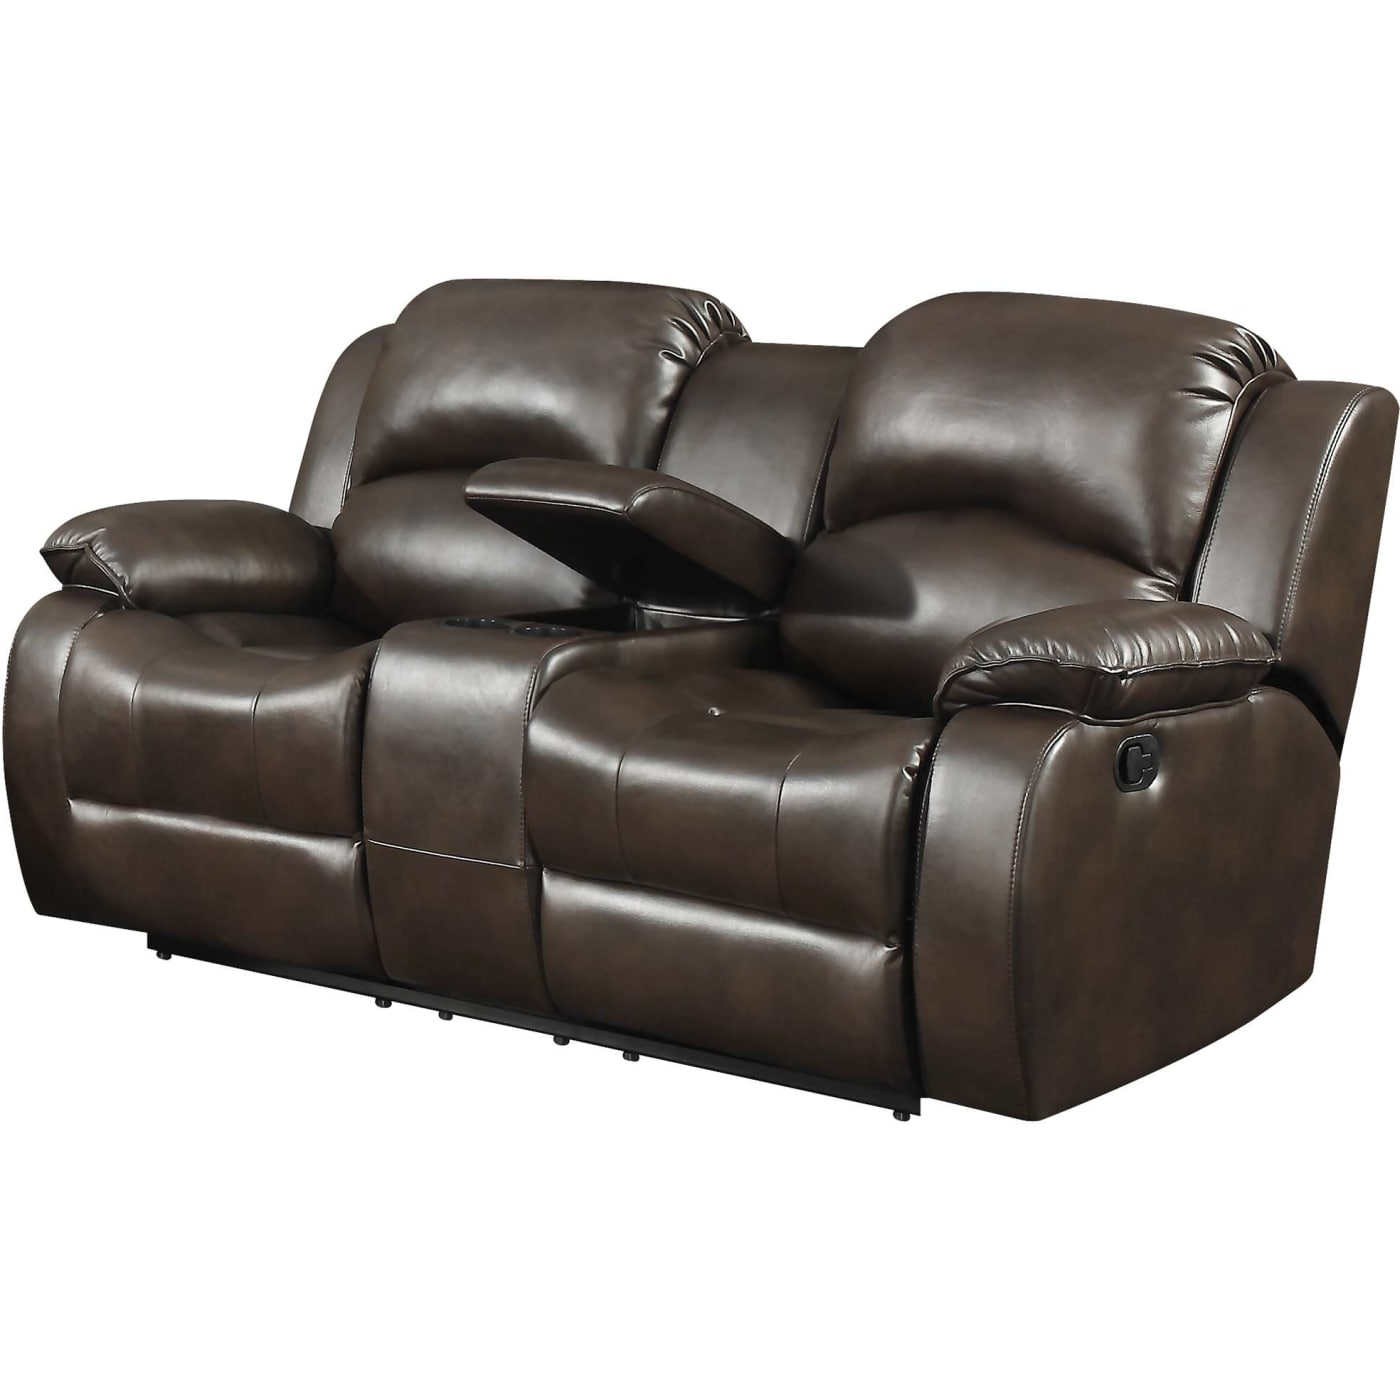 AC Pacific Samara Transitional Reclining Loveseat With Storage Console And  Cup Holders U0026 Reviews   Goedekers.com